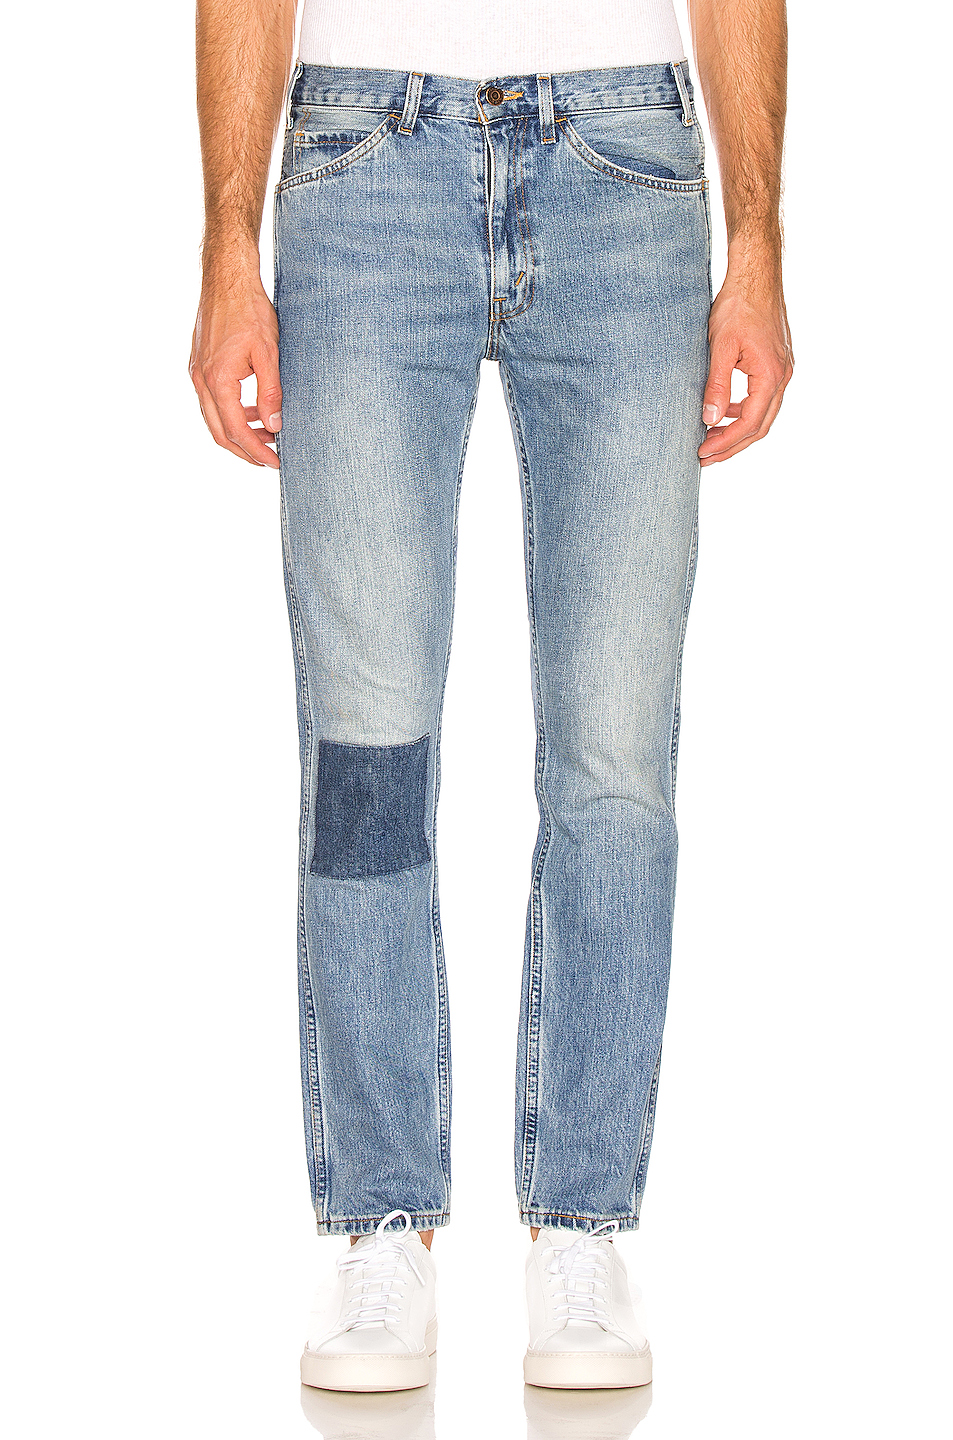 03eef3bf99c Buy Original LEVI'S Vintage Clothing 1969 606 Jeans at Indonesia ...